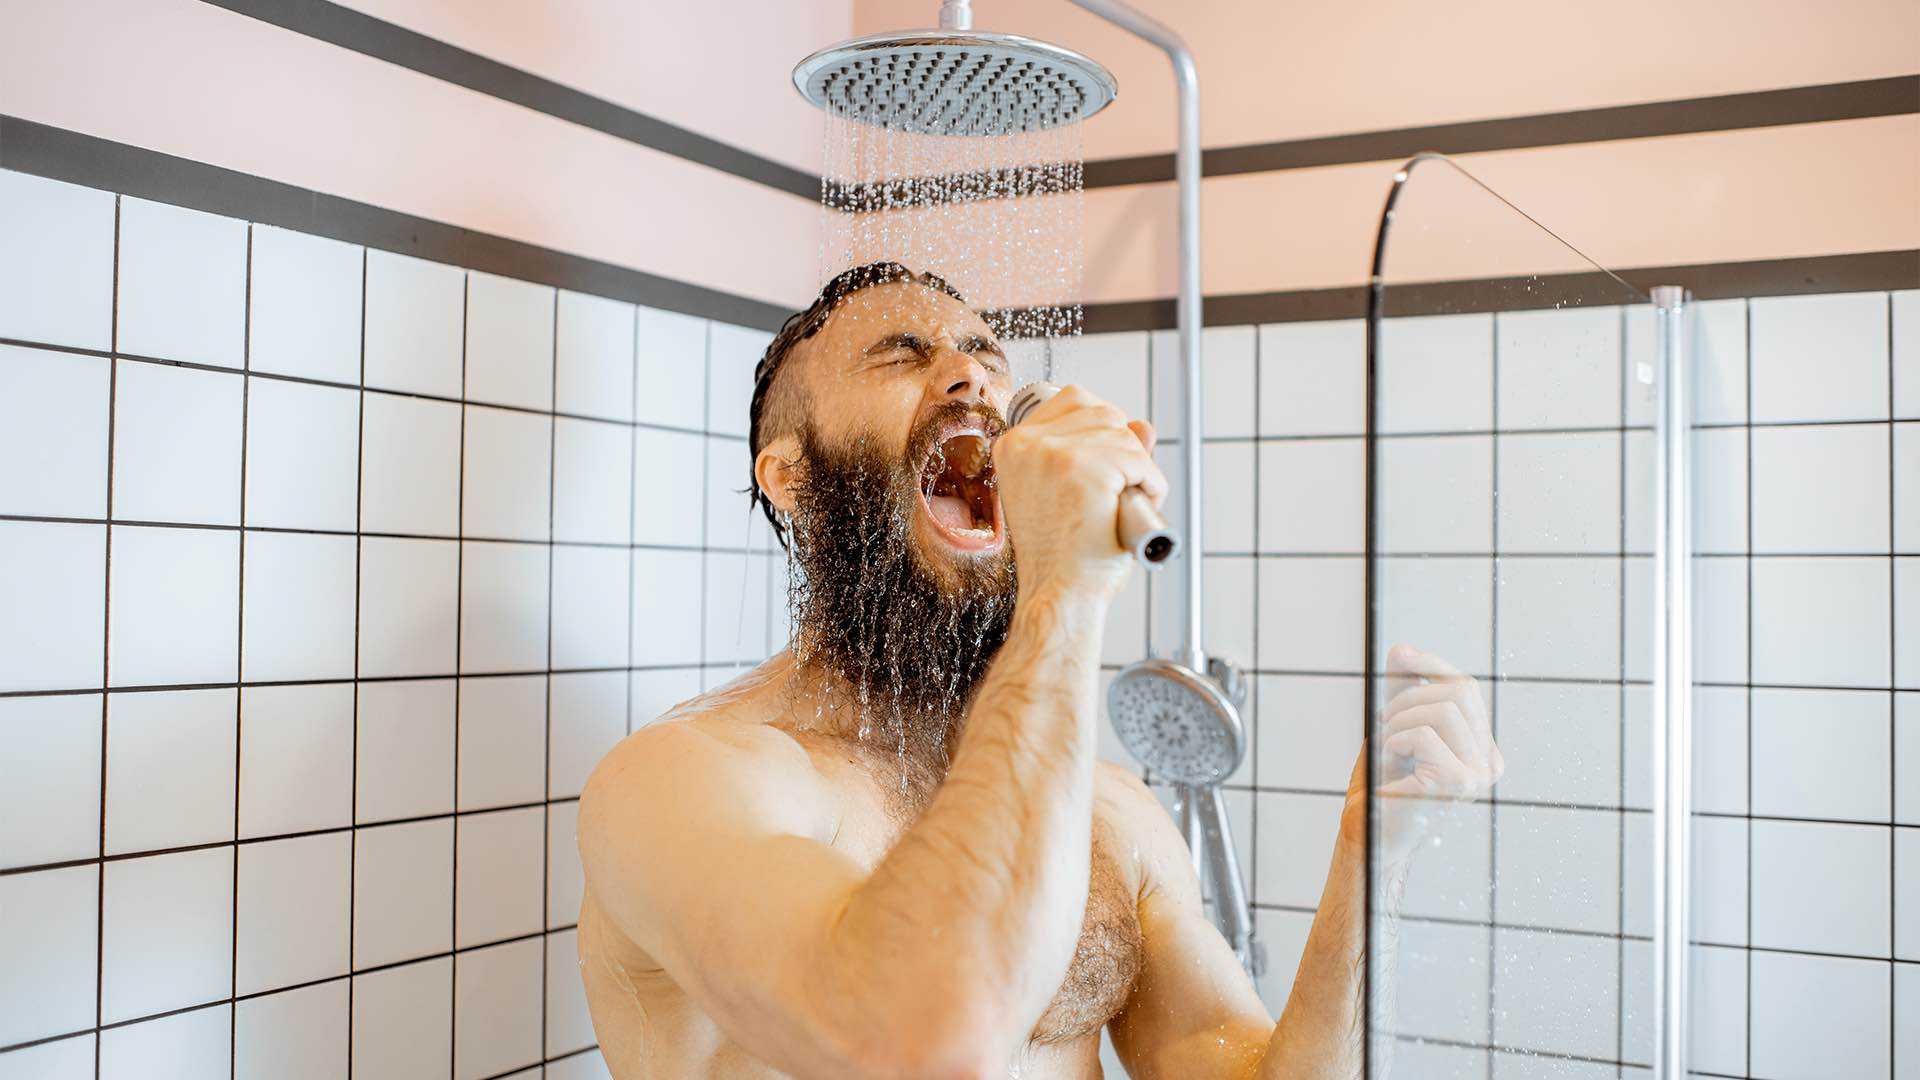 sing in the shower